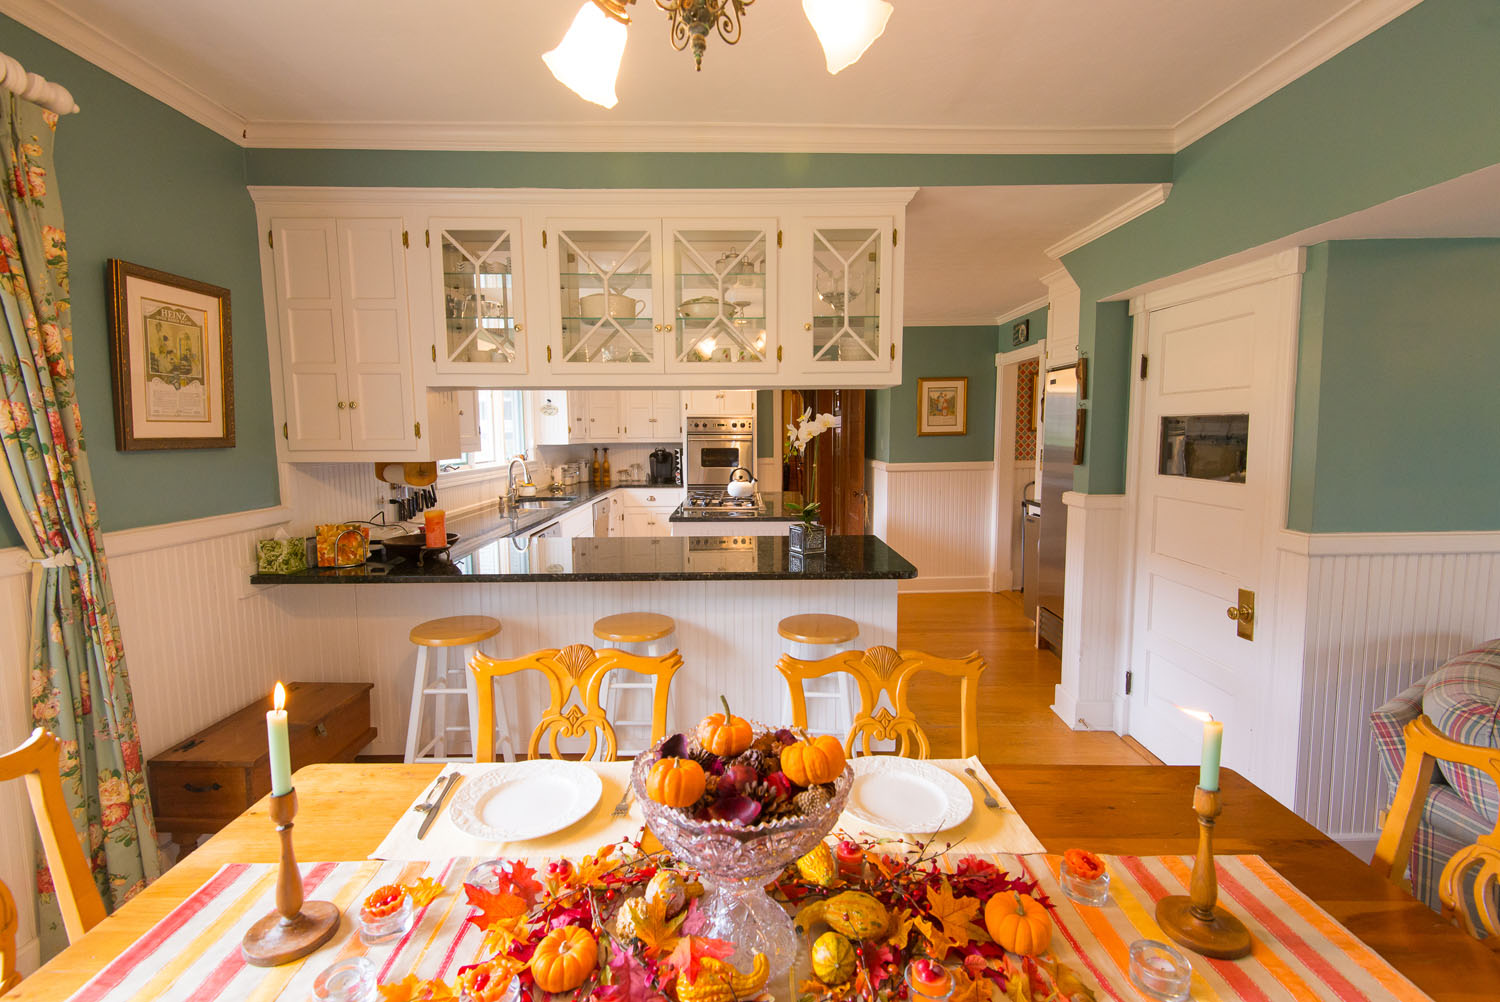 Eat in Kitchen Dining Table into kitchen - Intensify.jpg